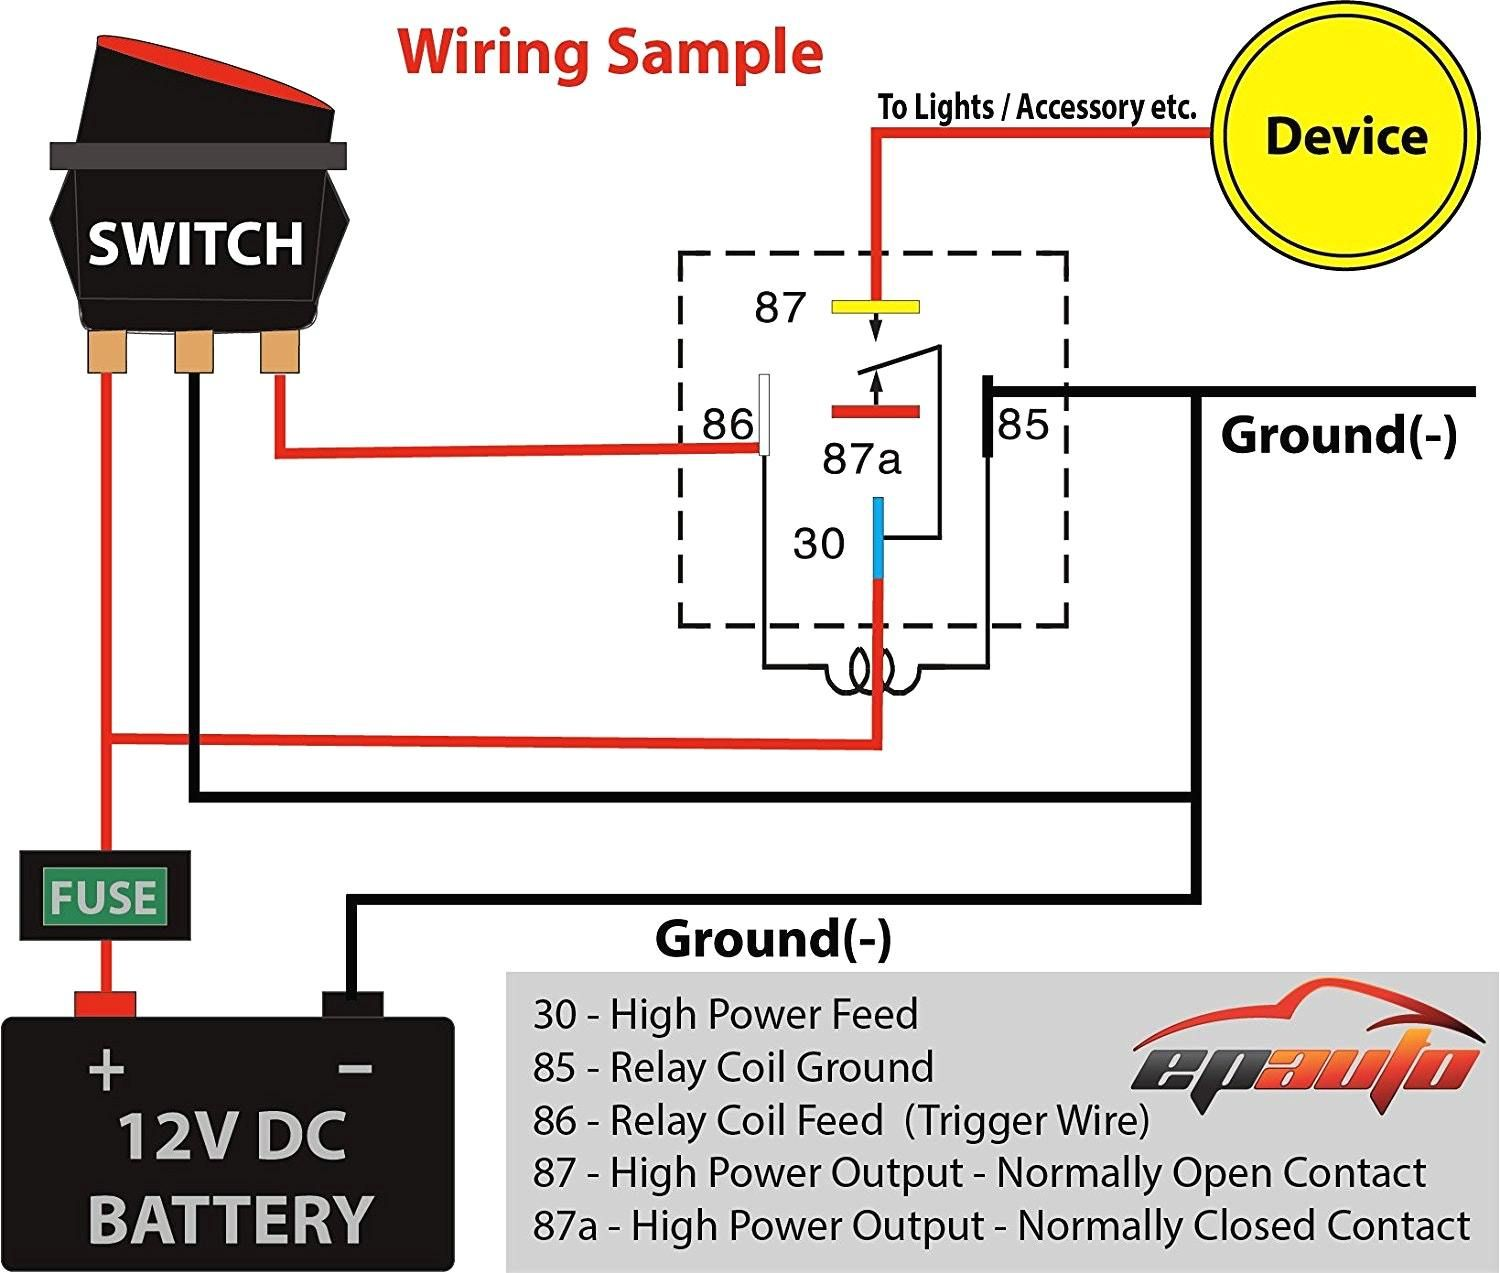 hight resolution of bosch relay wiring diagram forn automotivens gtsparkplugs and pin prong with in for horn wires electrical circuit sample lines